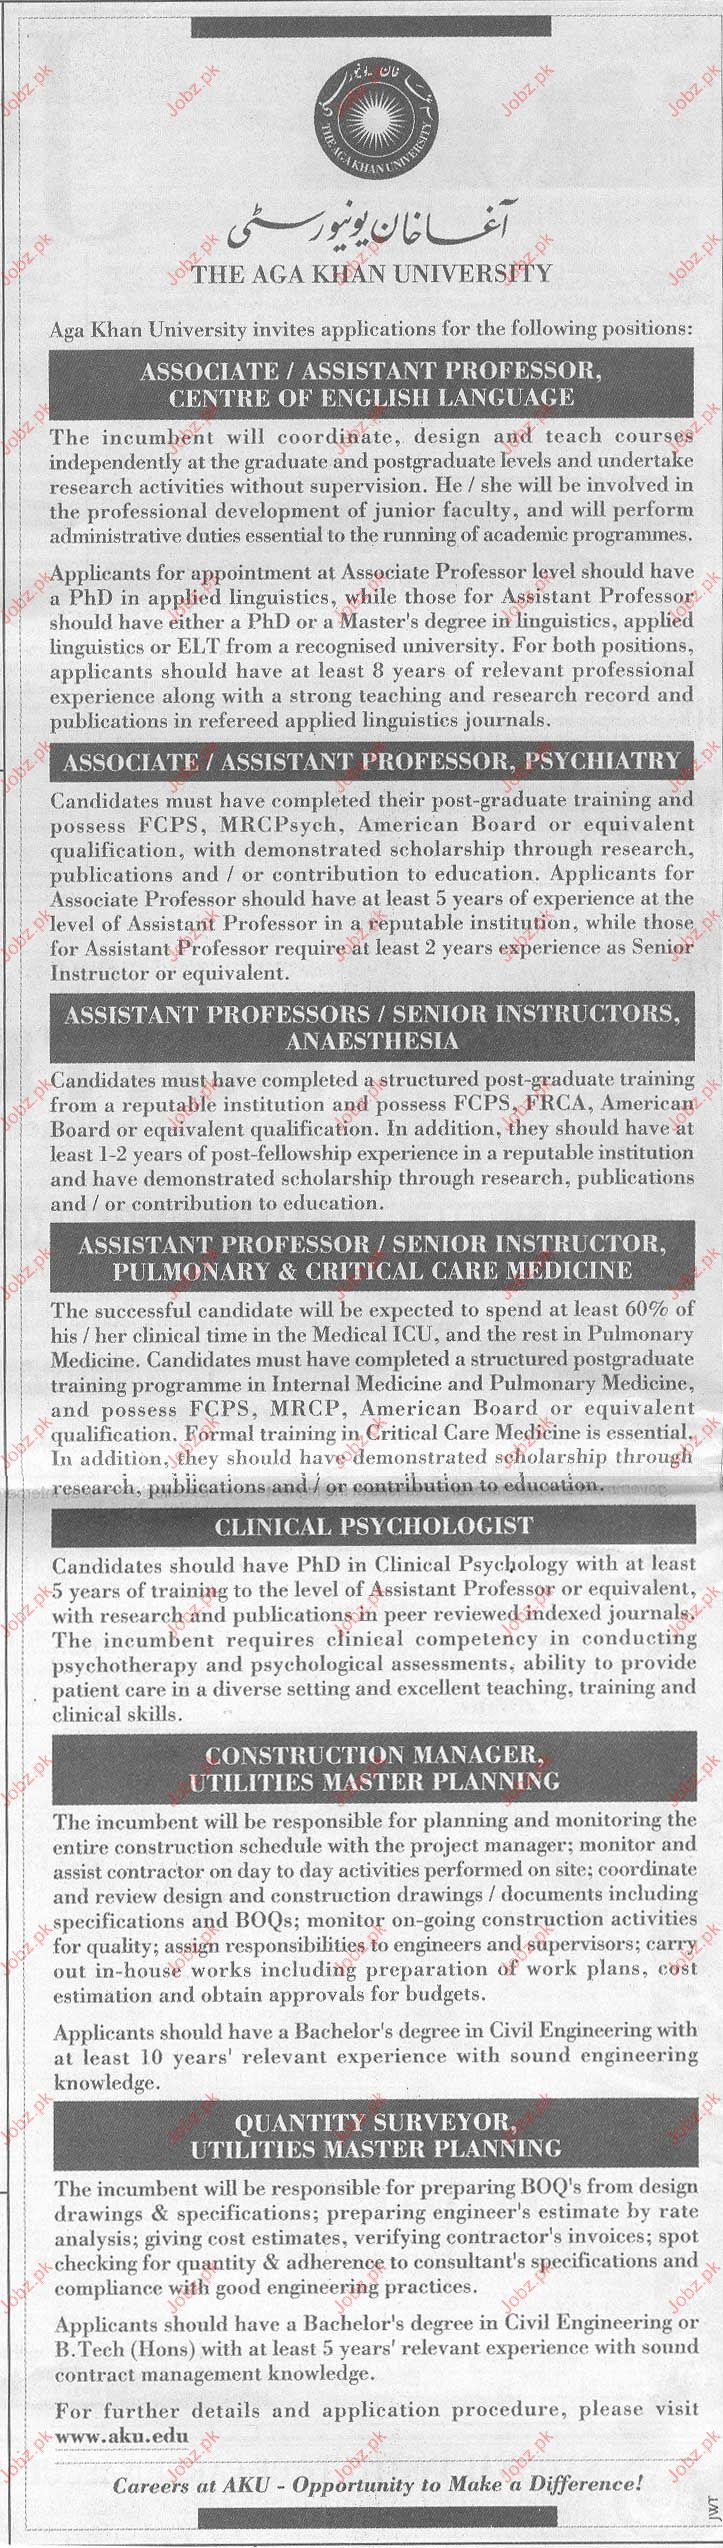 Faculity Required in The Agha Khan University